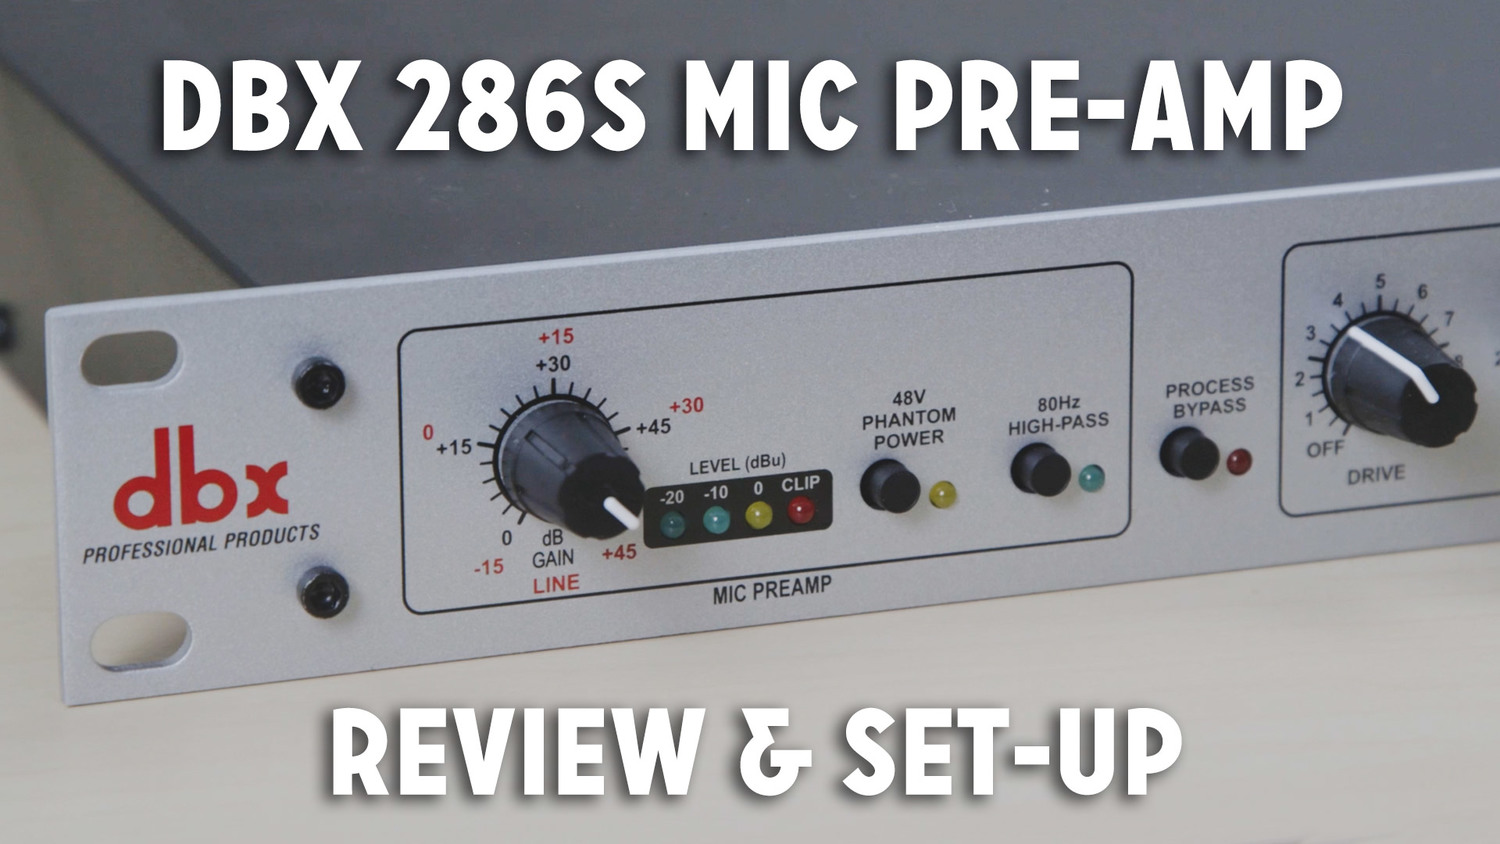 Dbx 286s Mic Pre Amp Review Set Up Walkthrough Caleb Wojcik Low Noise Microphone With Op